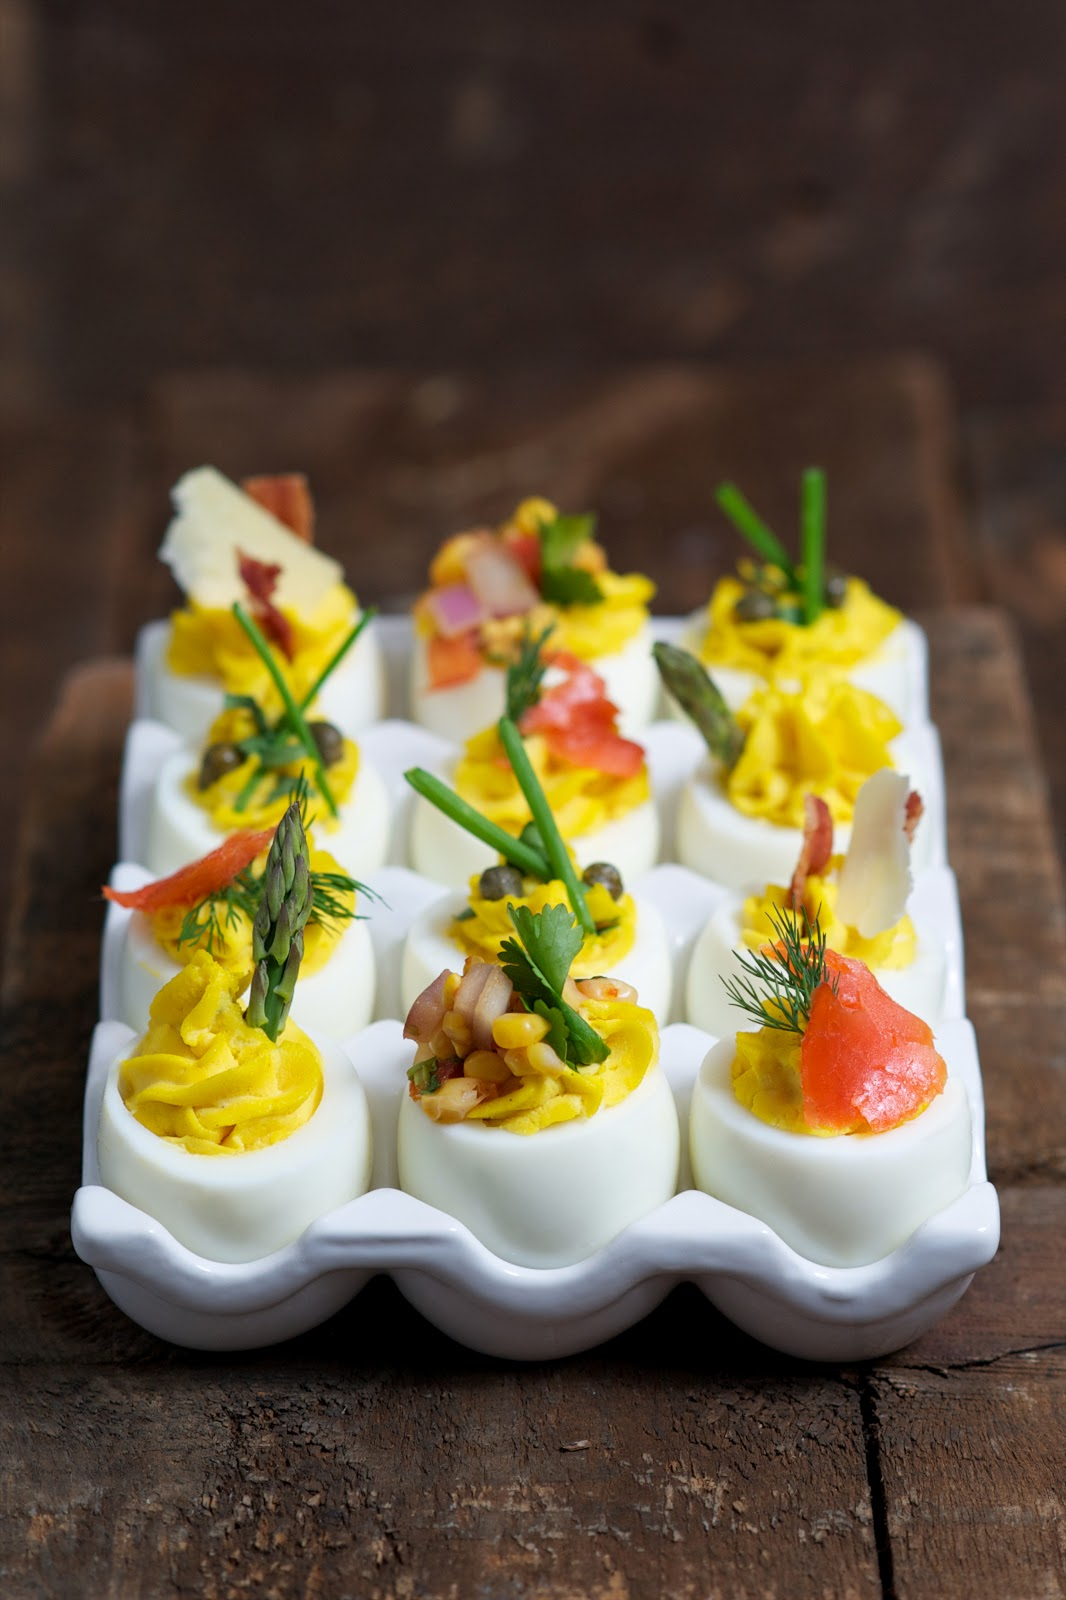 deviled eggs deviled eggs with lemon zest deviled eggs with green ...